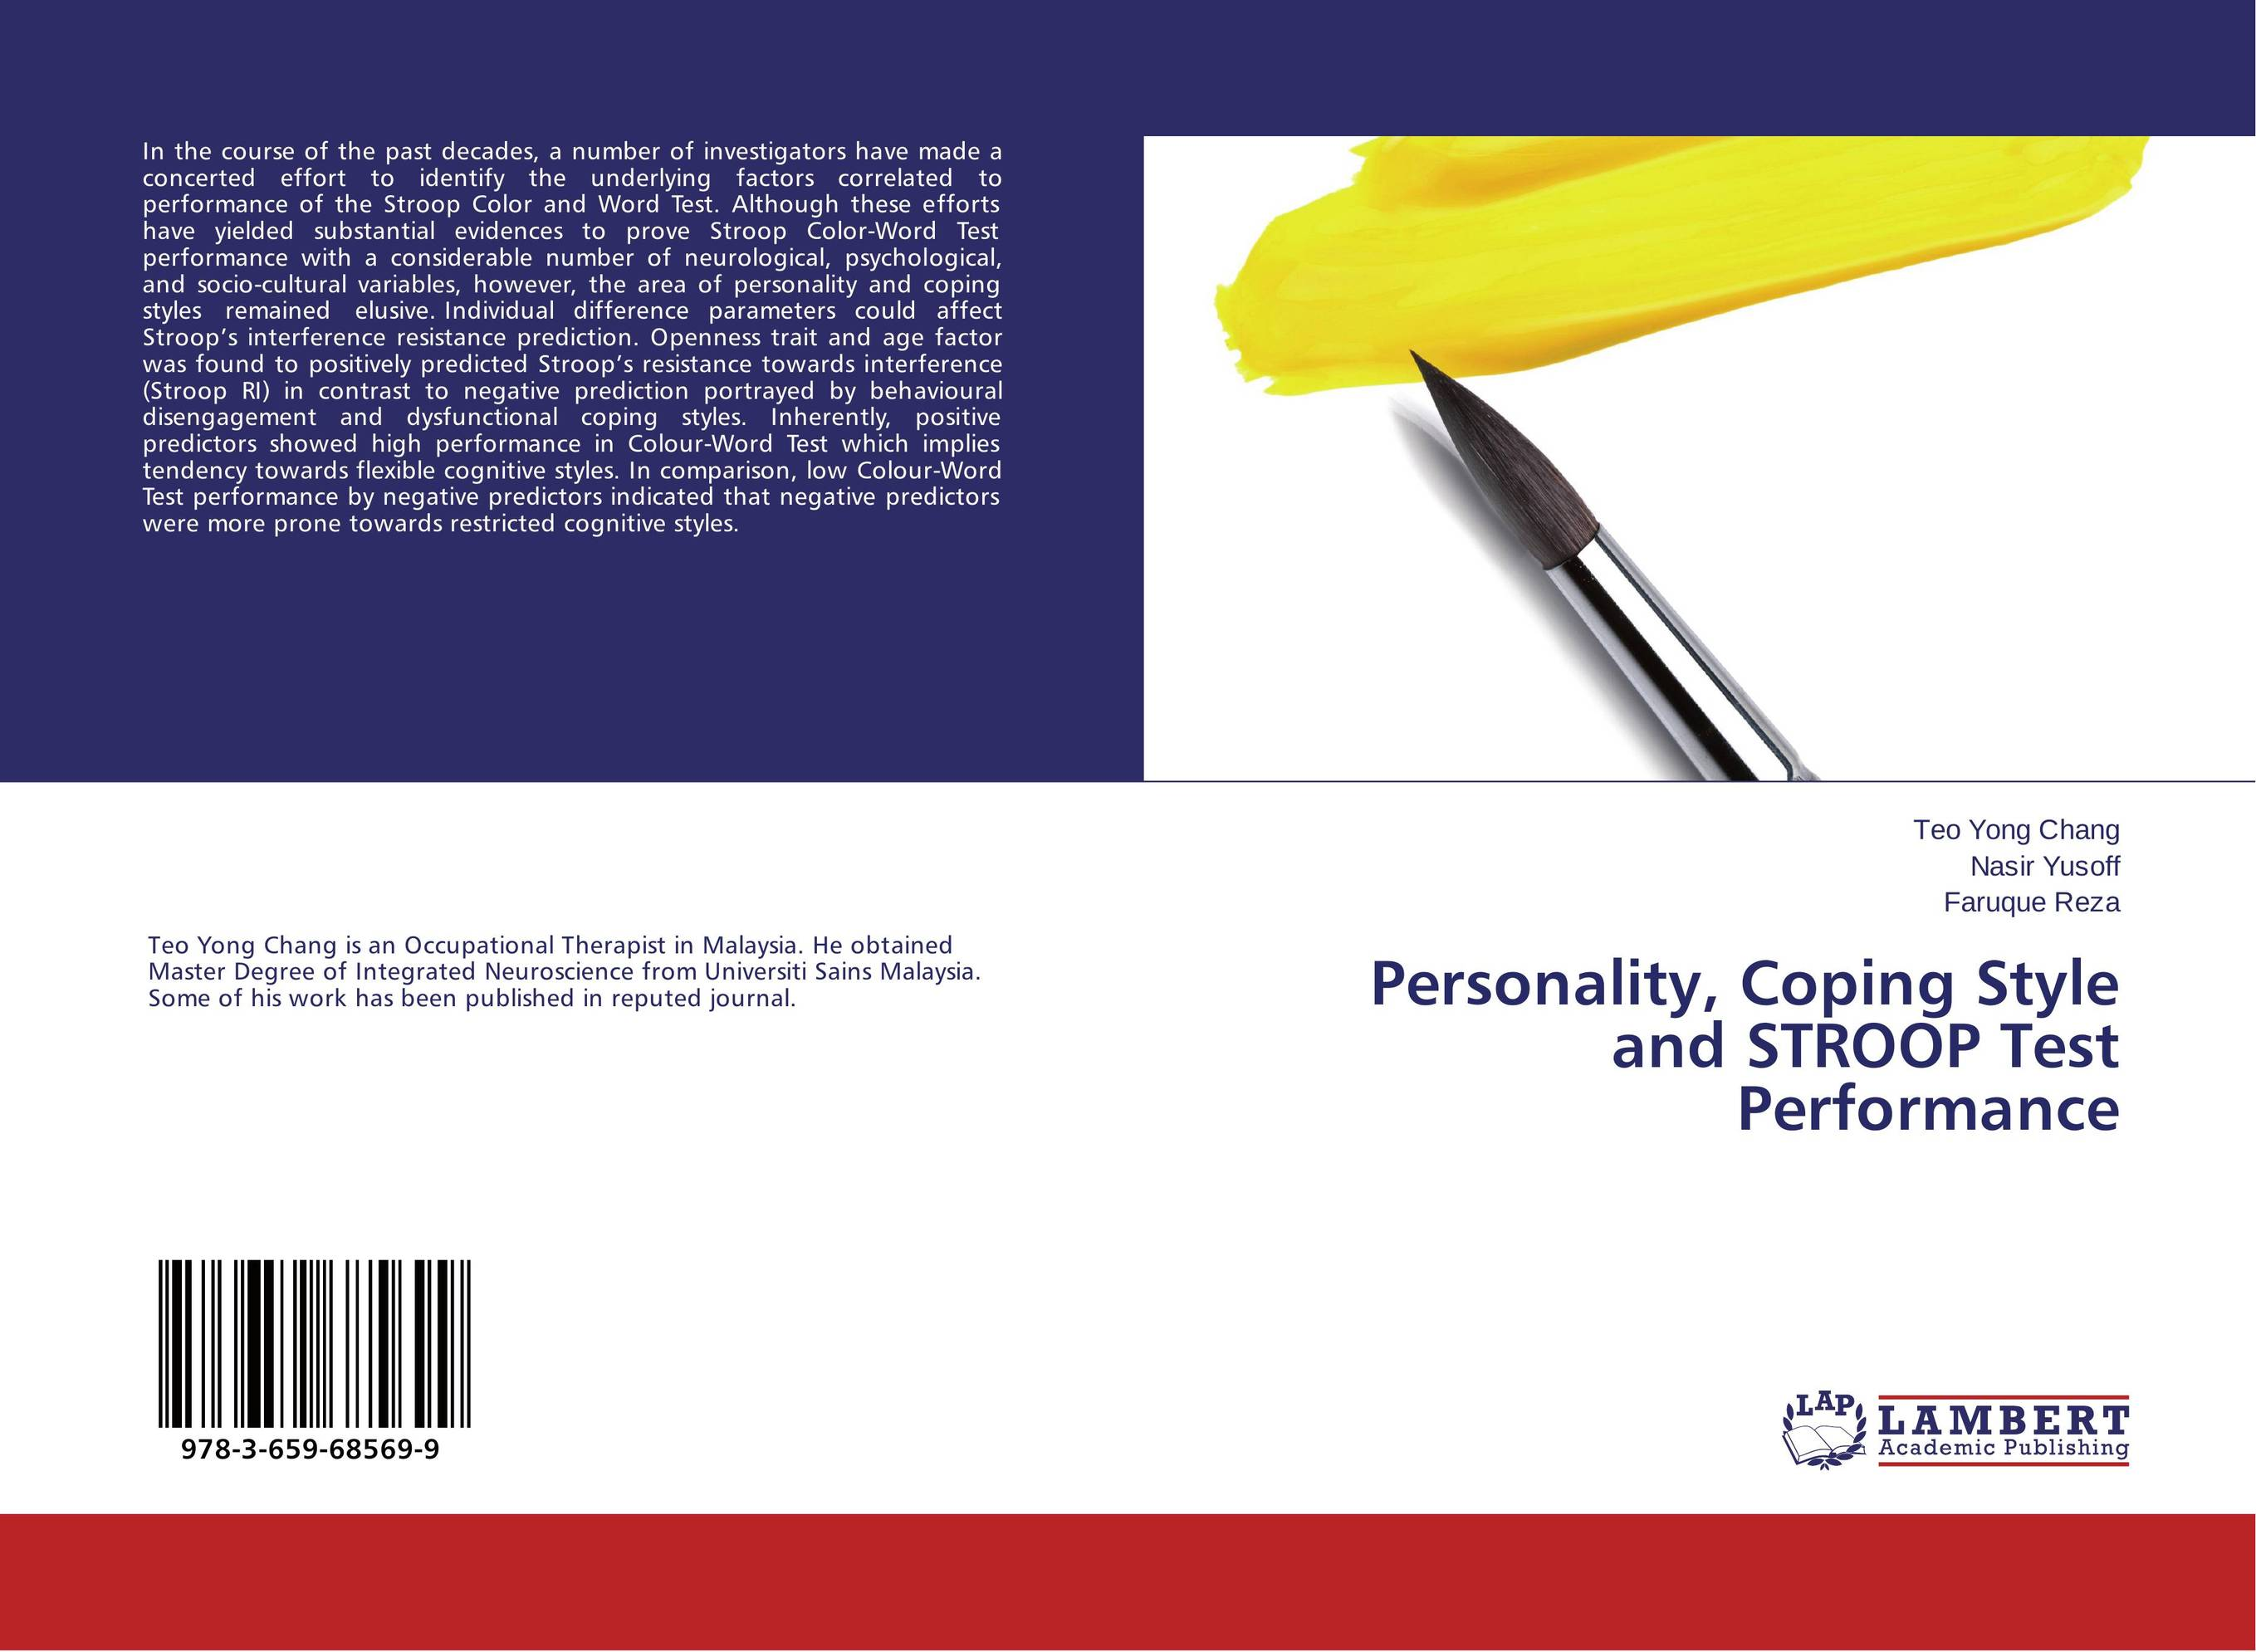 Personality, Coping Style and STROOP Test Performance william labov principles of linguistic change cognitive and cultural factors